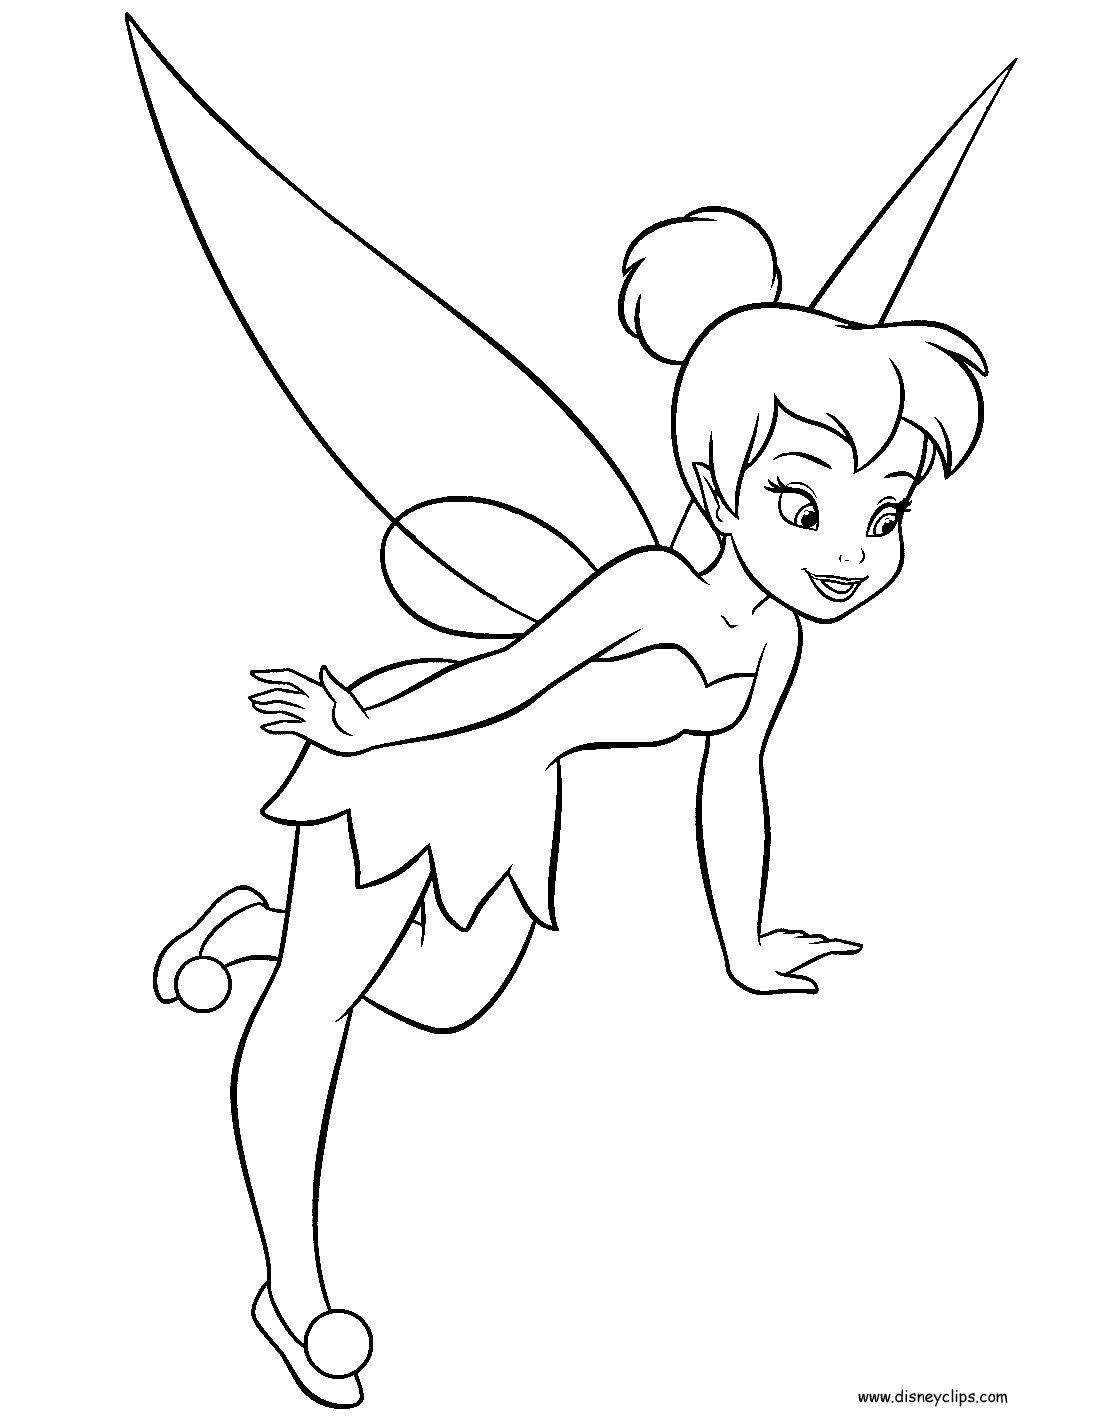 Disney Fairies Coloring Pages Images In 2019 Http Www Wallpaperartdesignhd Us Disney Fai Tinkerbell Coloring Pages Fairy Coloring Pages Disney Coloring Pages